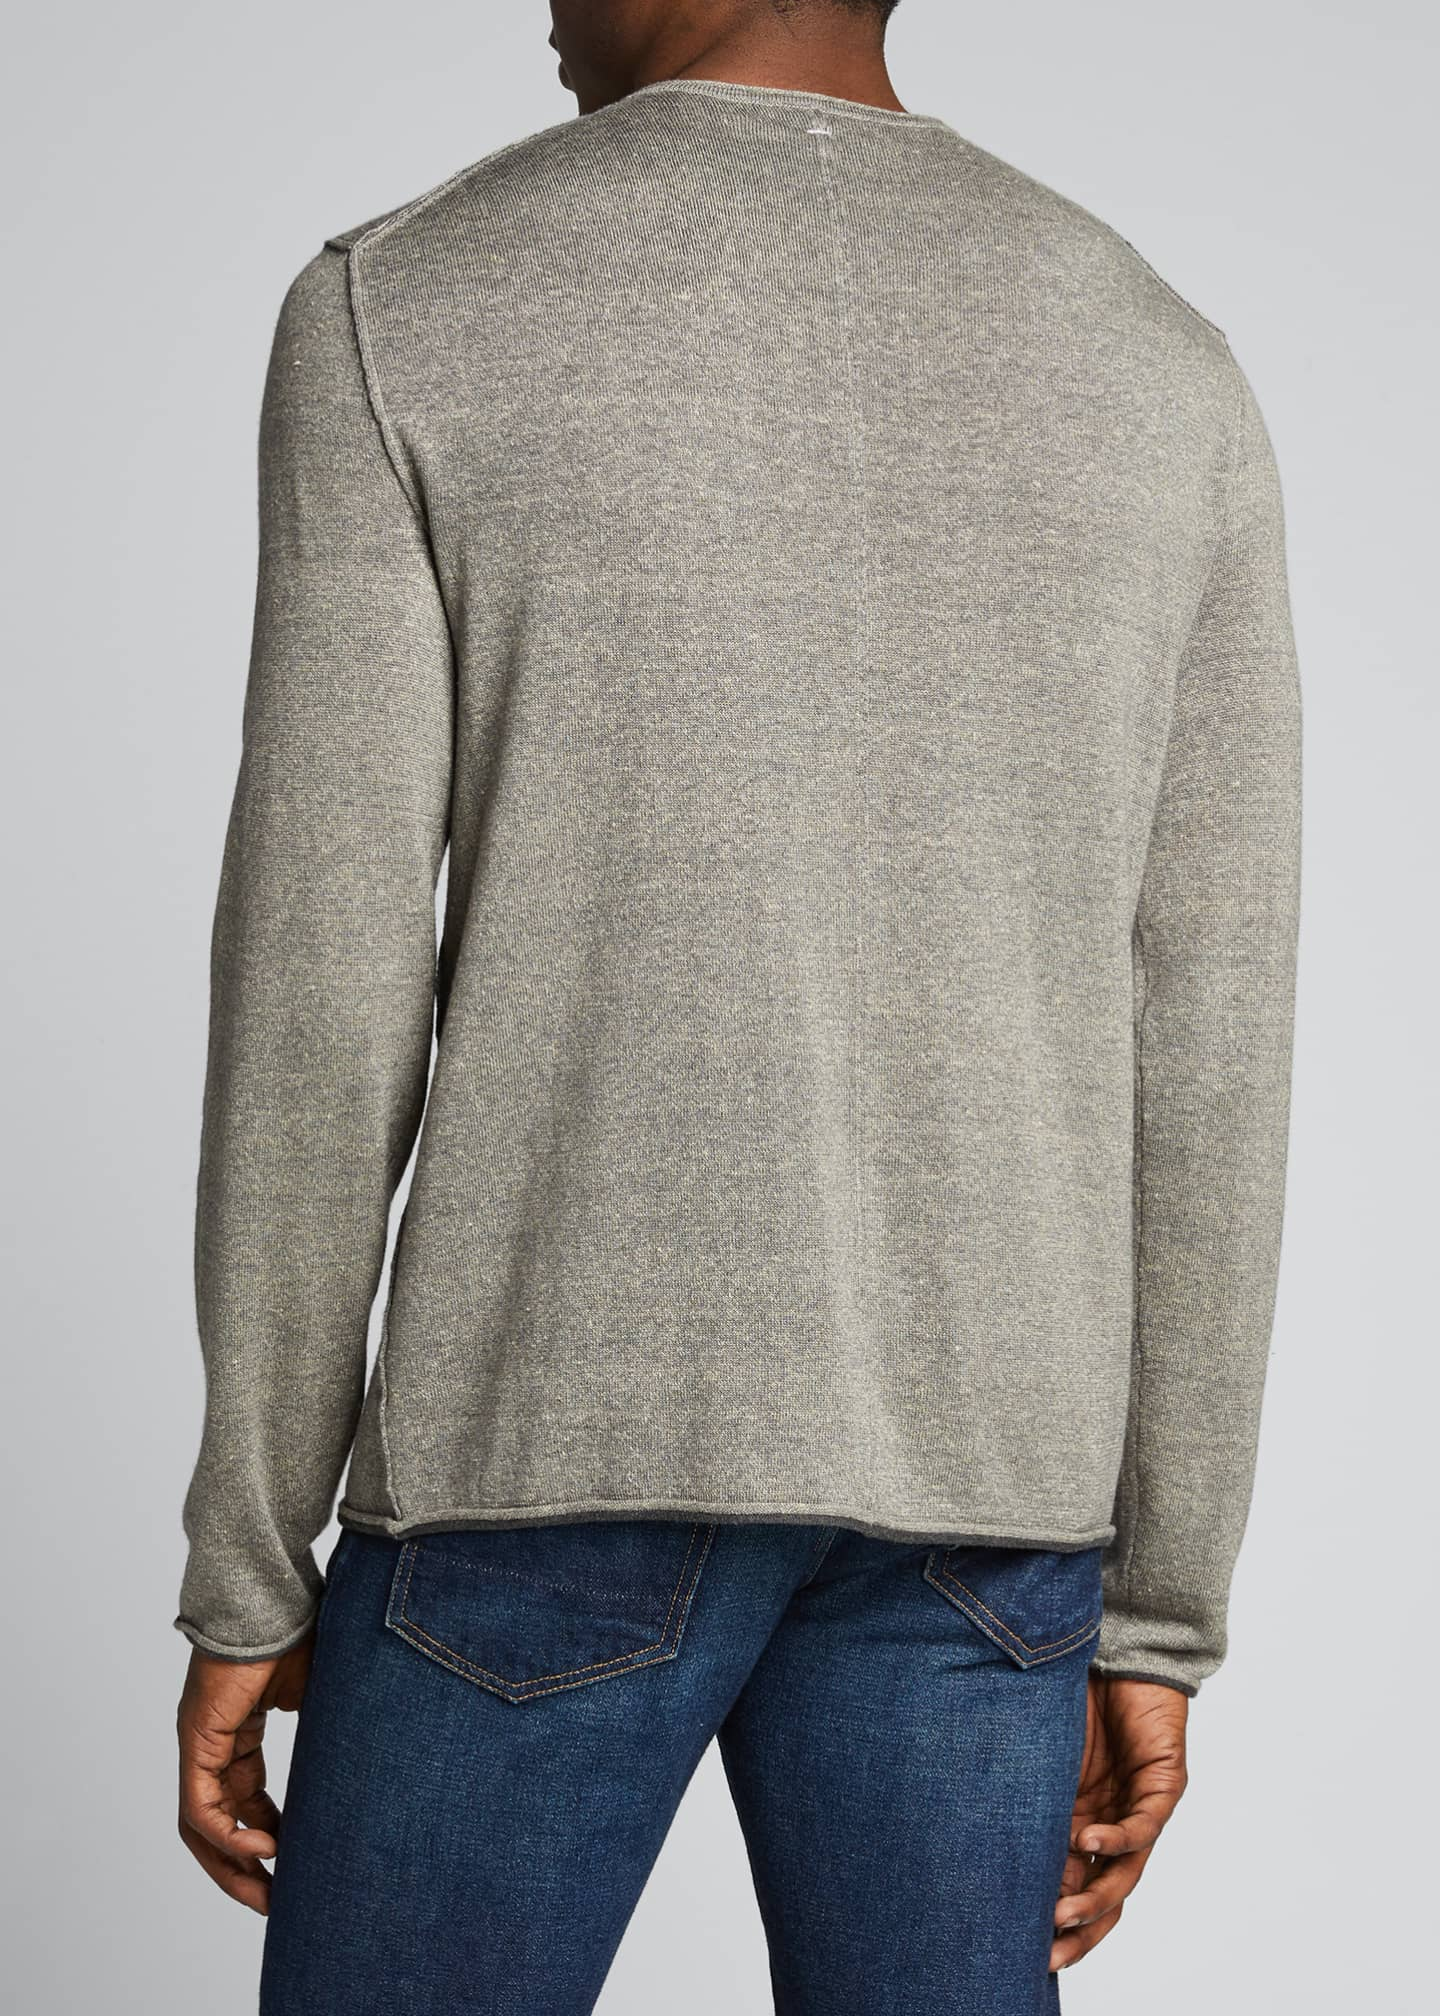 Image 2 of 5: Men's Trent Extrafine Crewneck Sweater